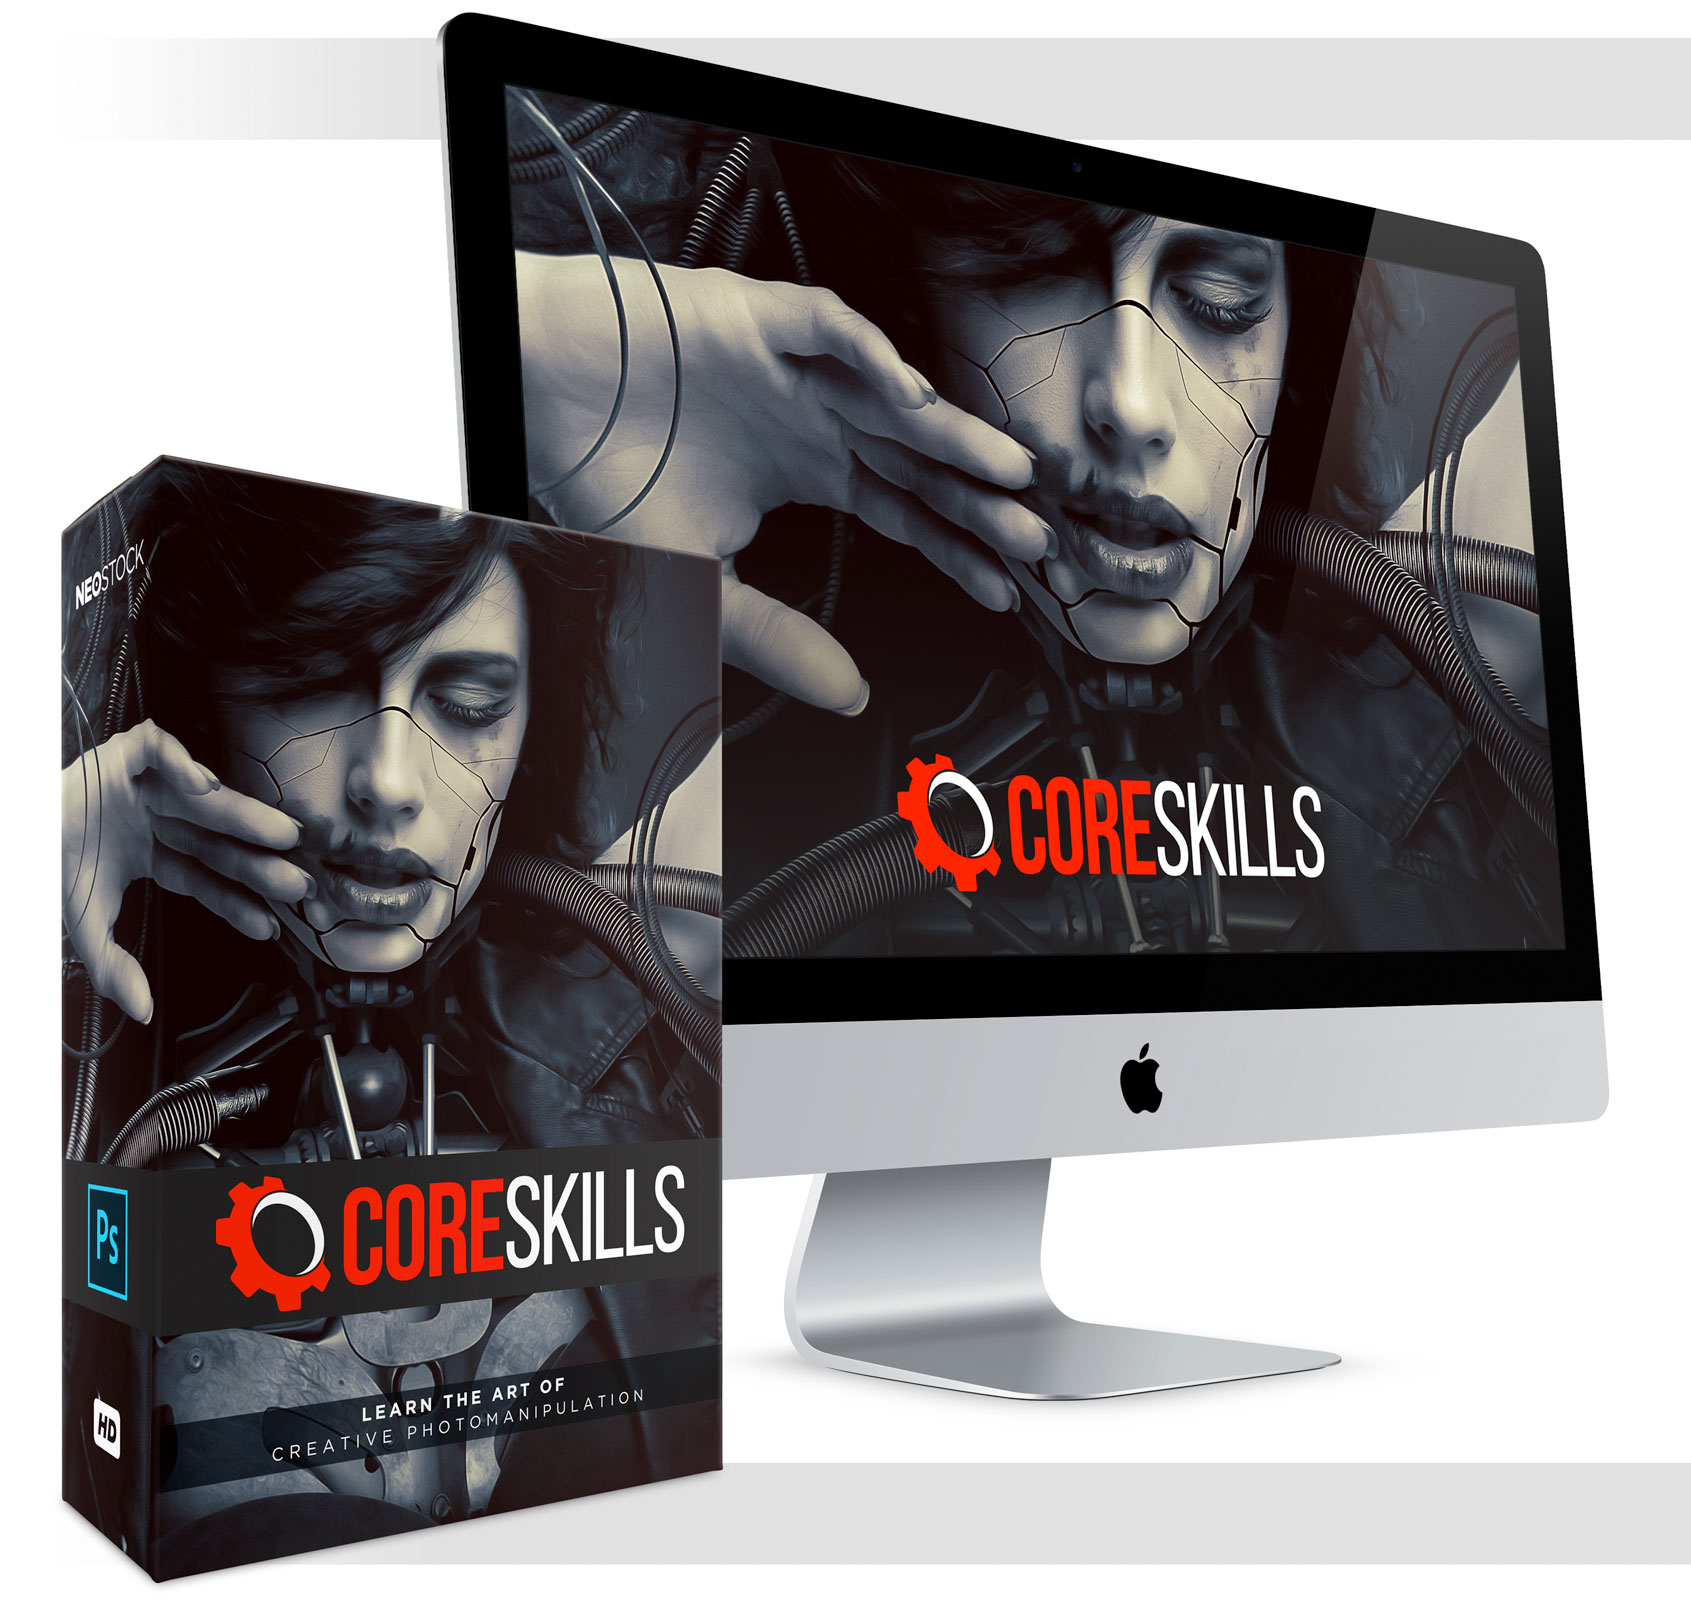 core skills learn creative photomanipulation photoshop video training